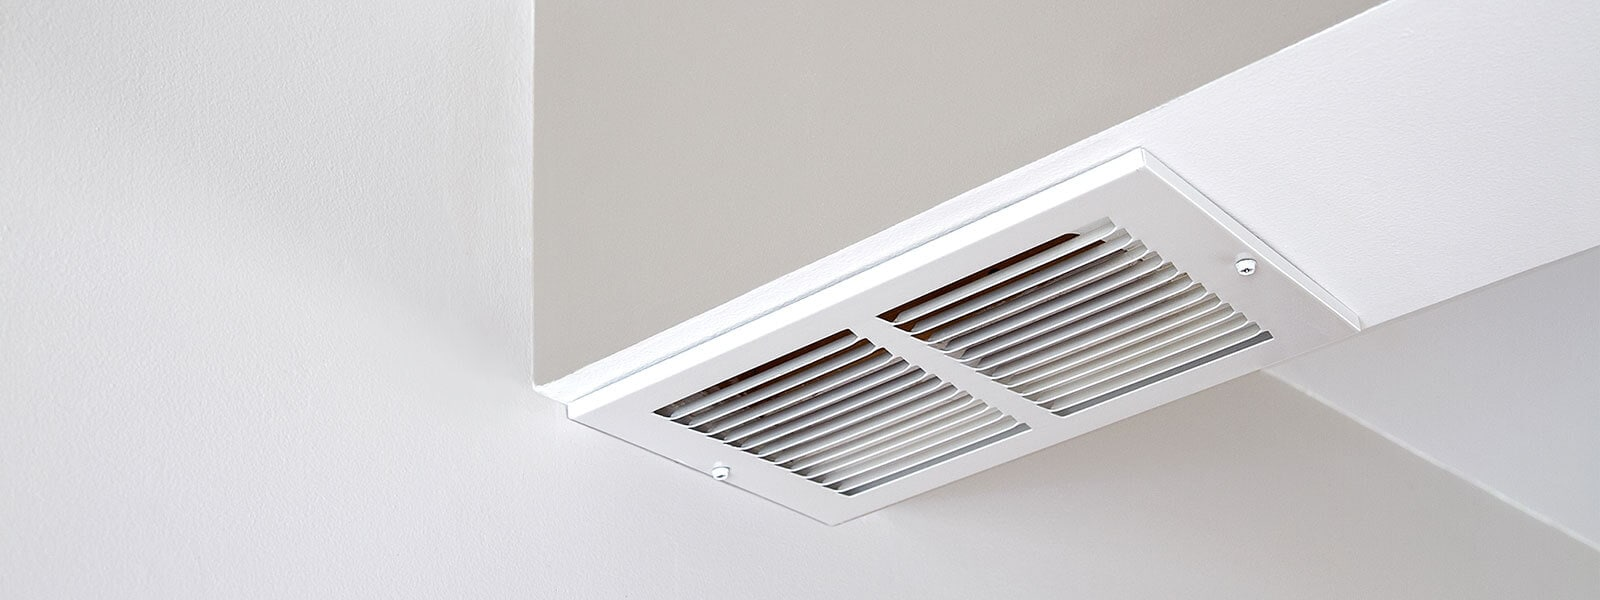 No Air Duct Cleaning Professional? Why You Should Reconsider